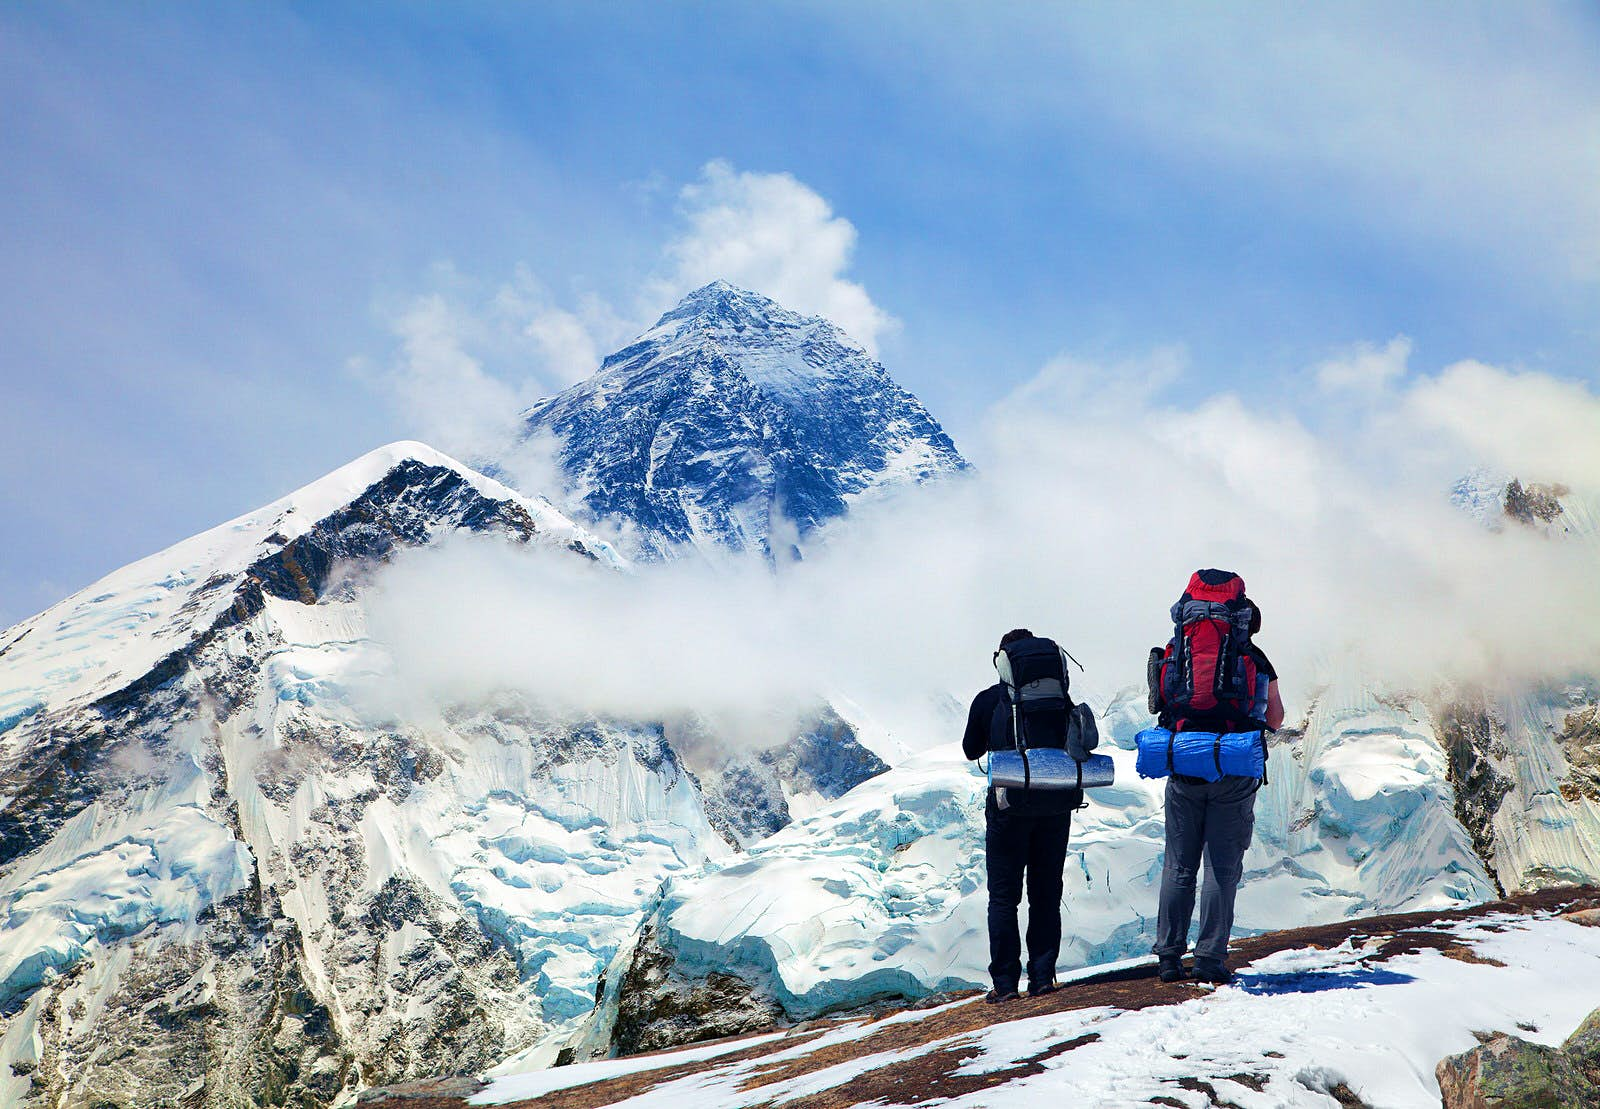 Panoramic view of Mount Everest from Kala Patthar with two tourists on the way to Everest base camp.